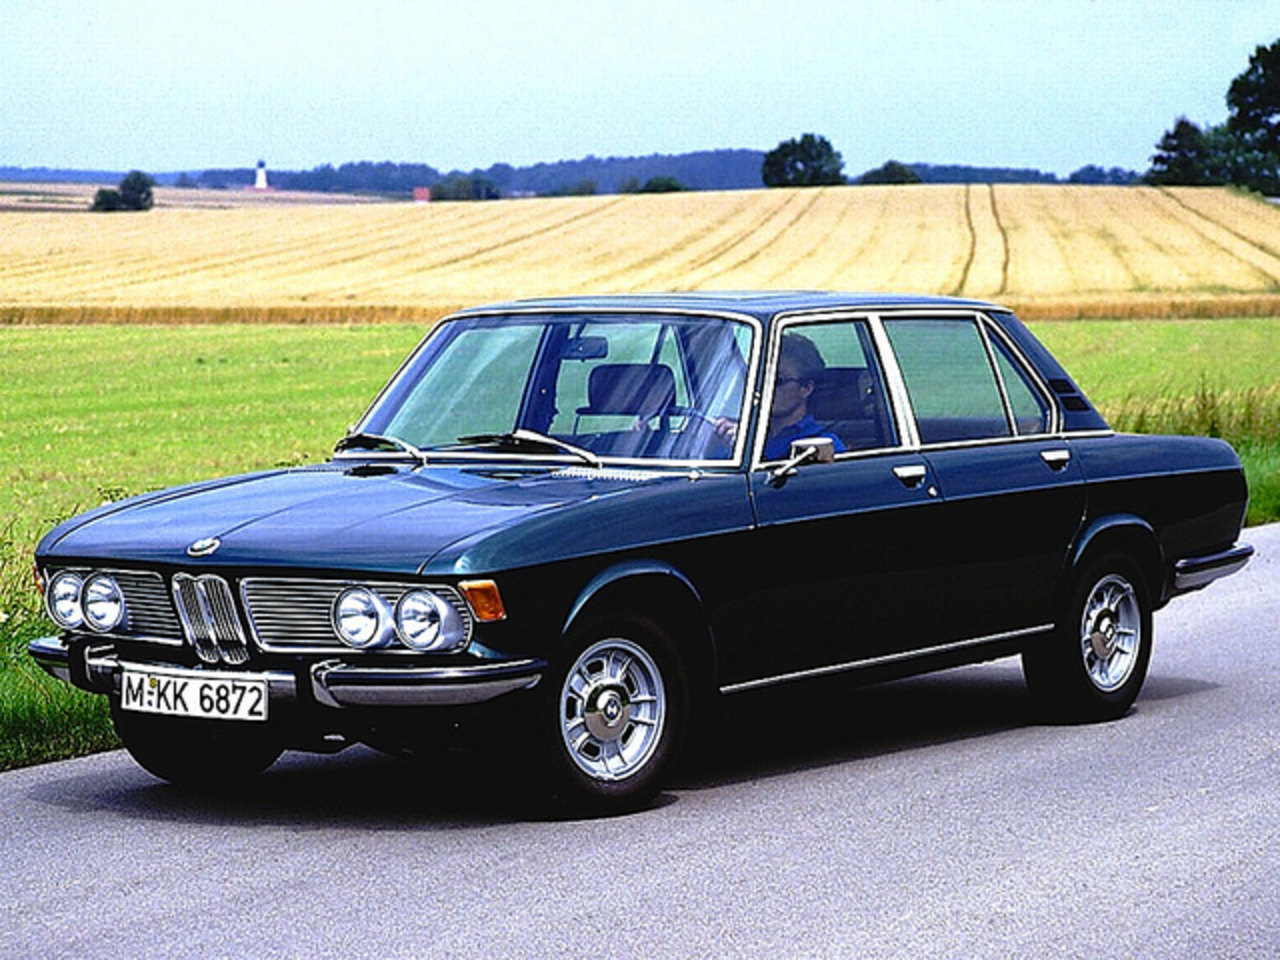 BMW 2500 (E3) | Flickr - Photo Sharing!